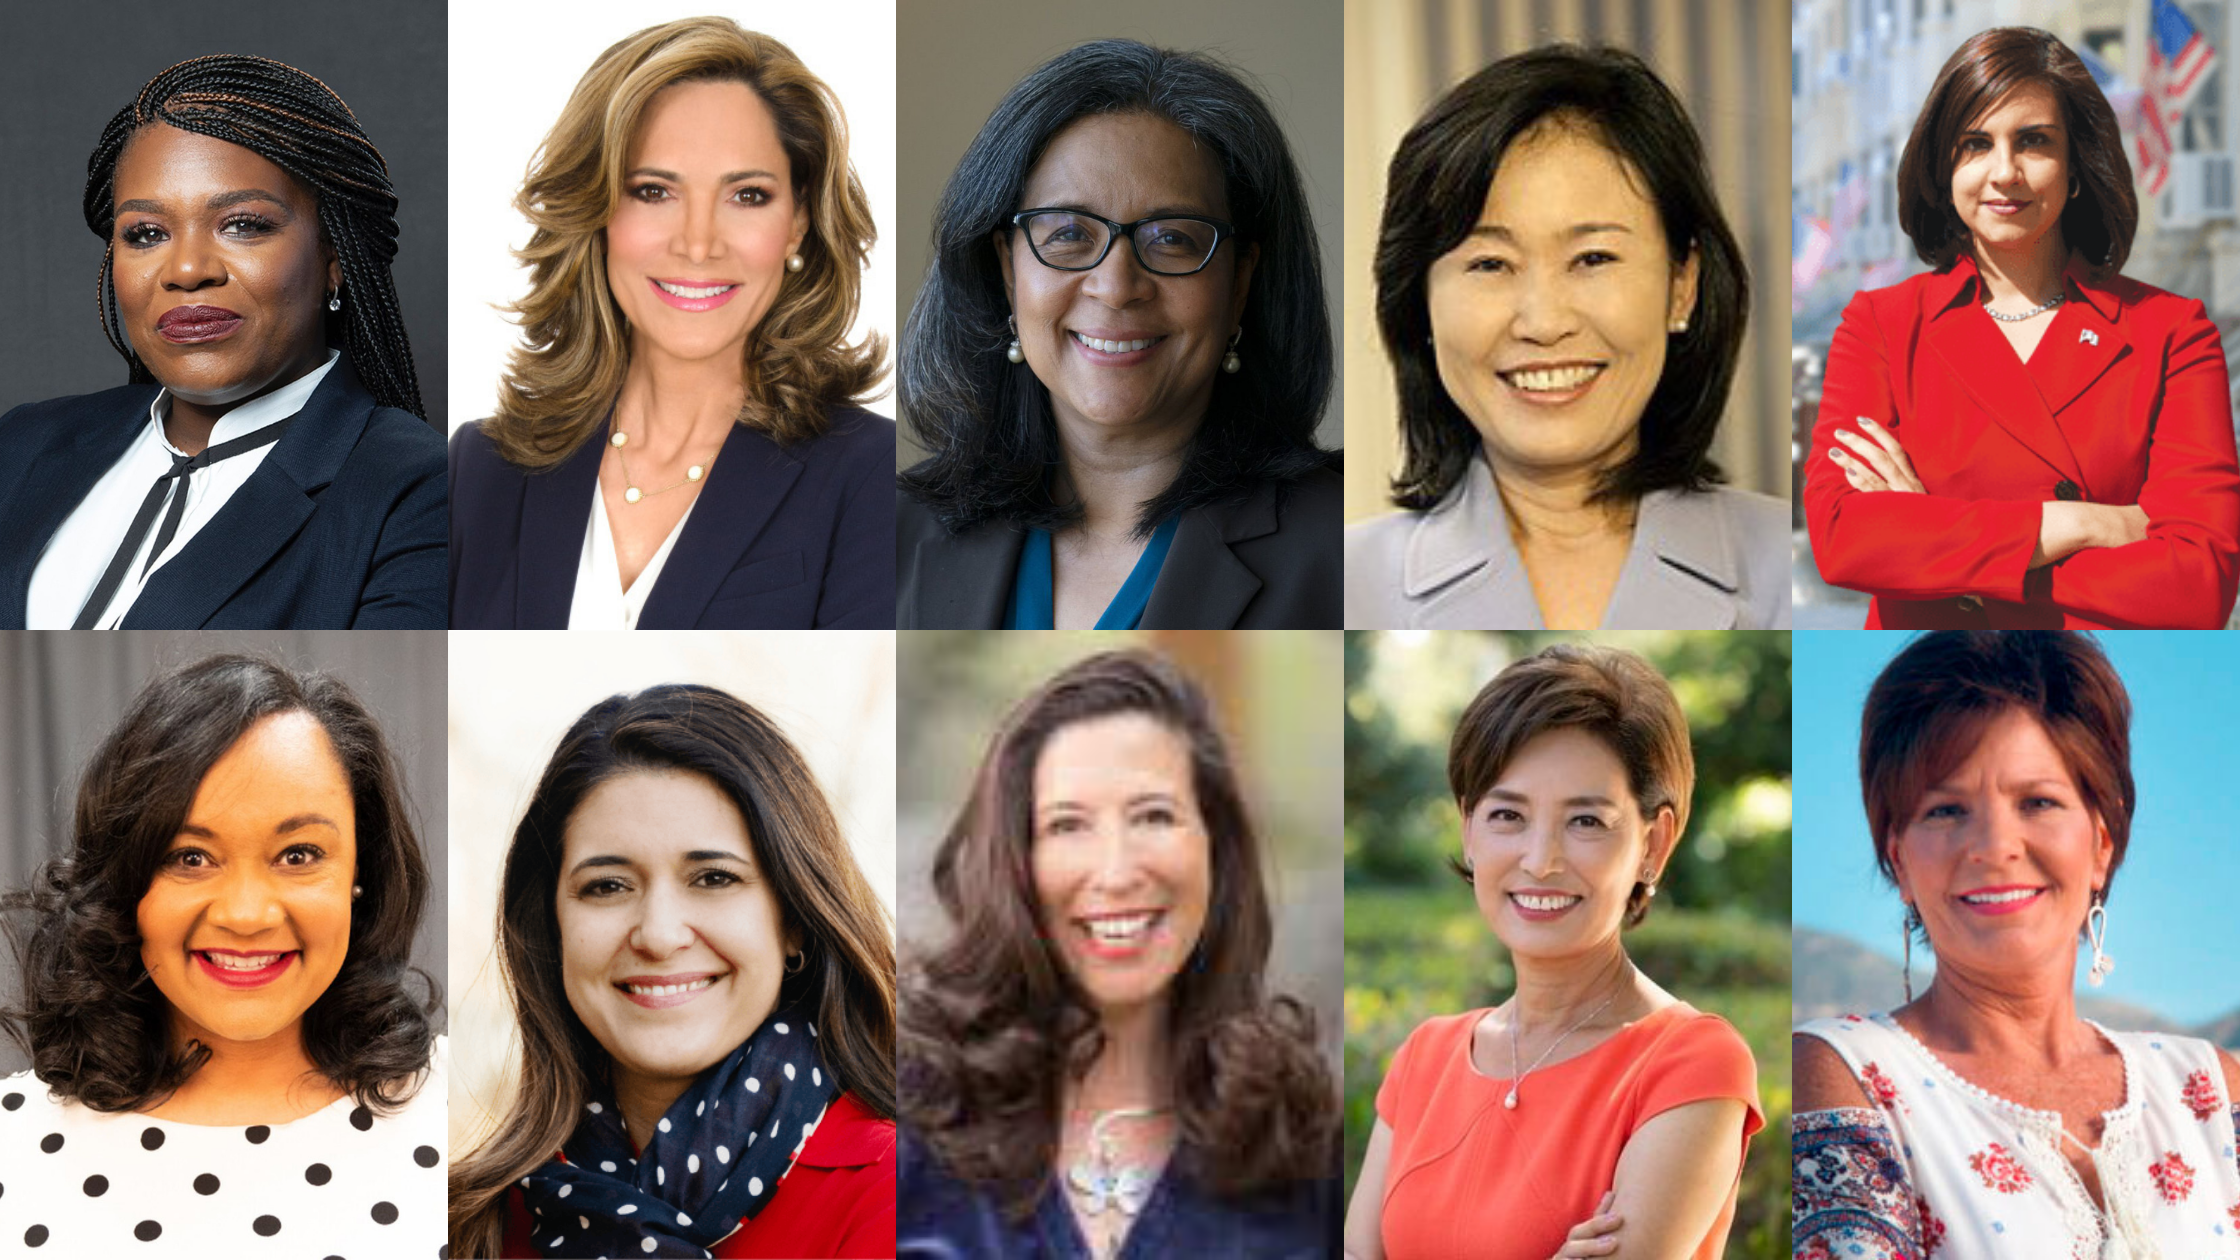 A record number of women ran for office in 2020, passing the record set in the 2018 midterm election. Check out some of the firsts in the 117th Congress.